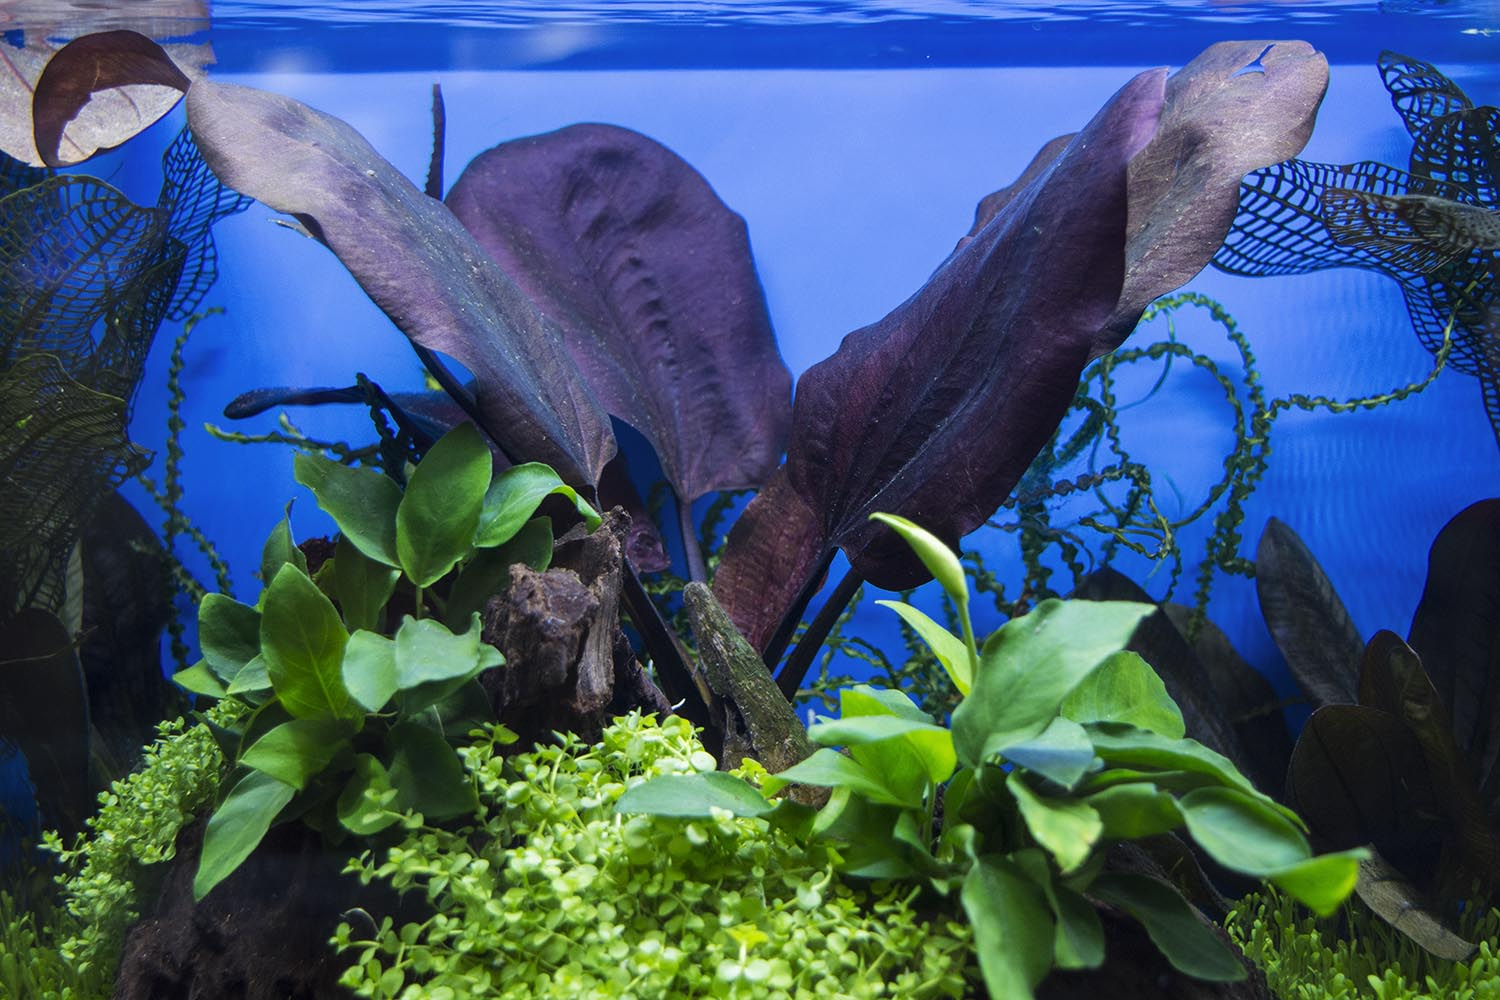 Fish weren't the only aquatic life on display - the centerpiece of this tank featuring plants from Florida Aquatic Nurseries is a stunning St. Elmo's Fire Sword (Echinodorus sp. 'St. Elmo's Fire')